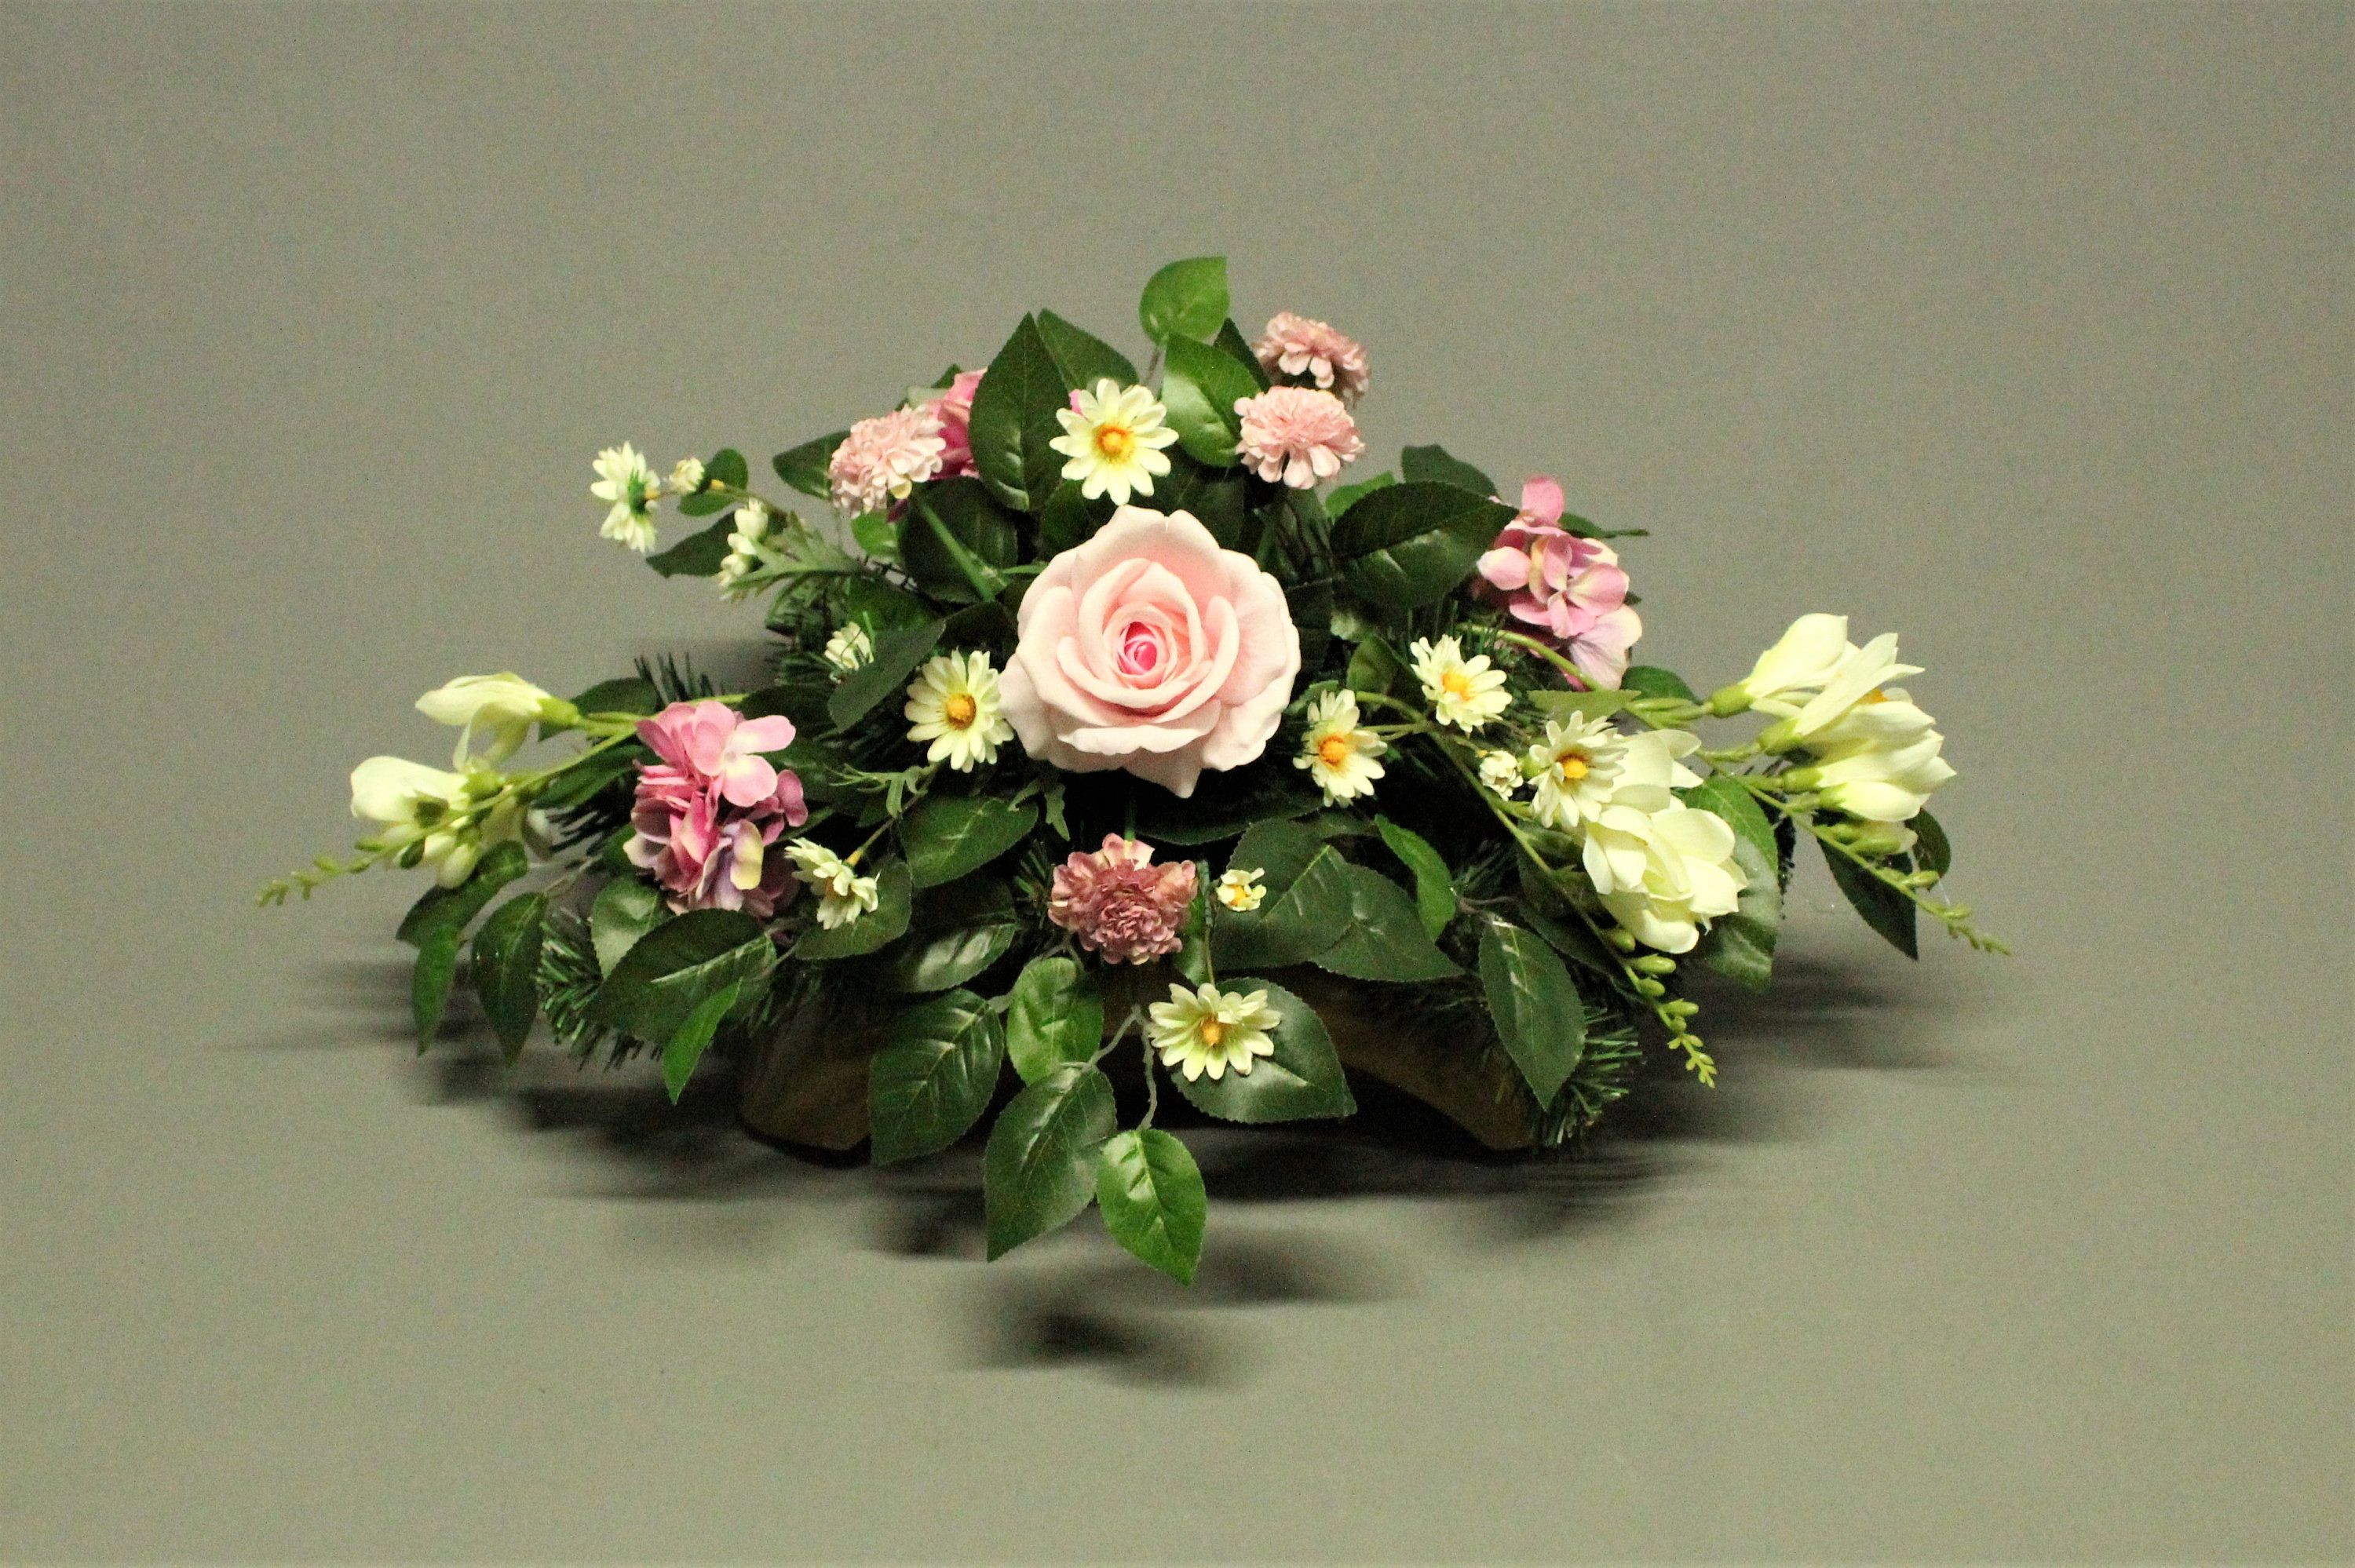 Tombstone Decoration Artificial Flowers Decoration For Monument Tomb For Grave Cemetery Decorations Feast Of The Dead Funeral Decorations In 2020 Artificial Flowers Cemetery Decorations Florist Studio